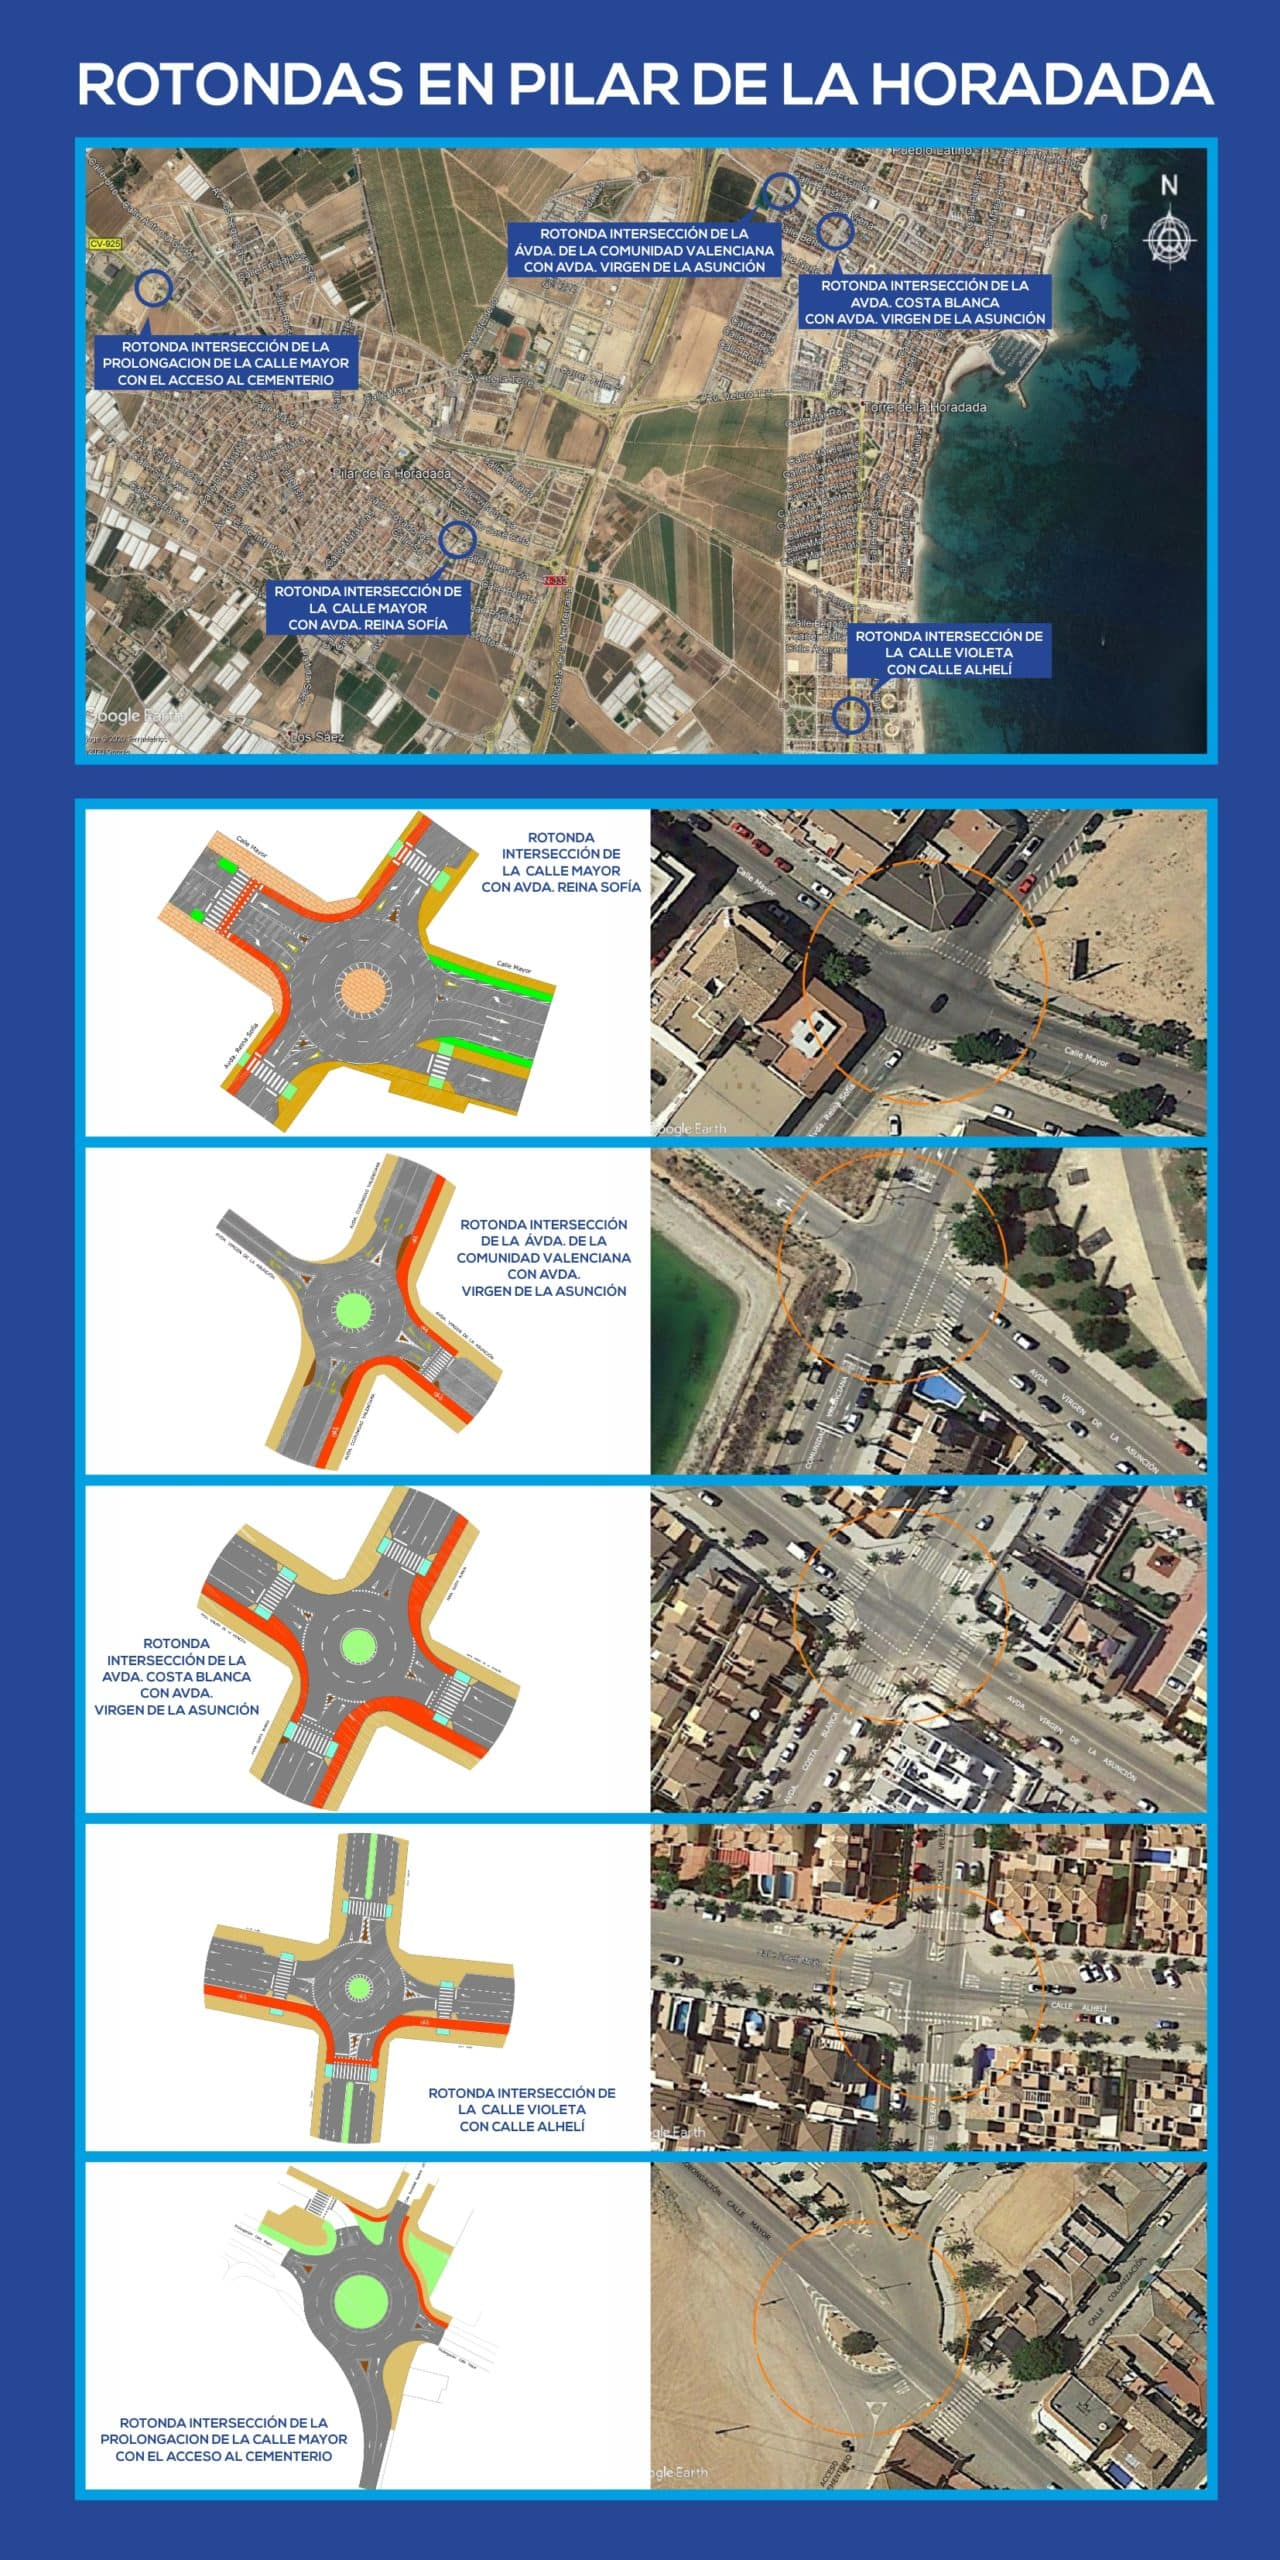 Five new roundabouts for Pilar de la Horadada